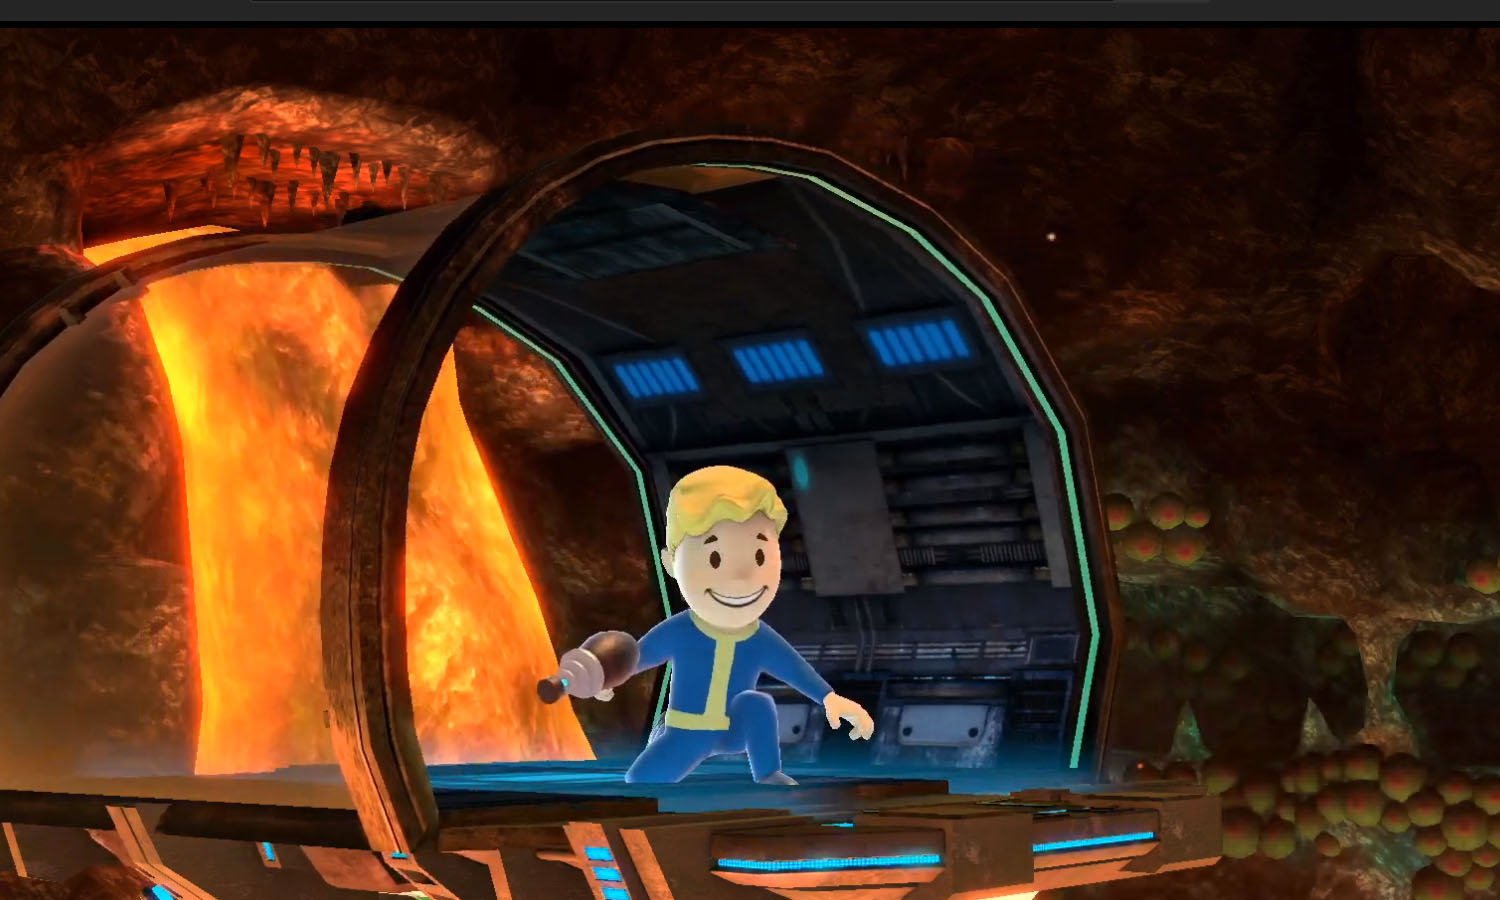 Fallout is crossing over to Smash Ultimate in Mii Fighter form screenshot